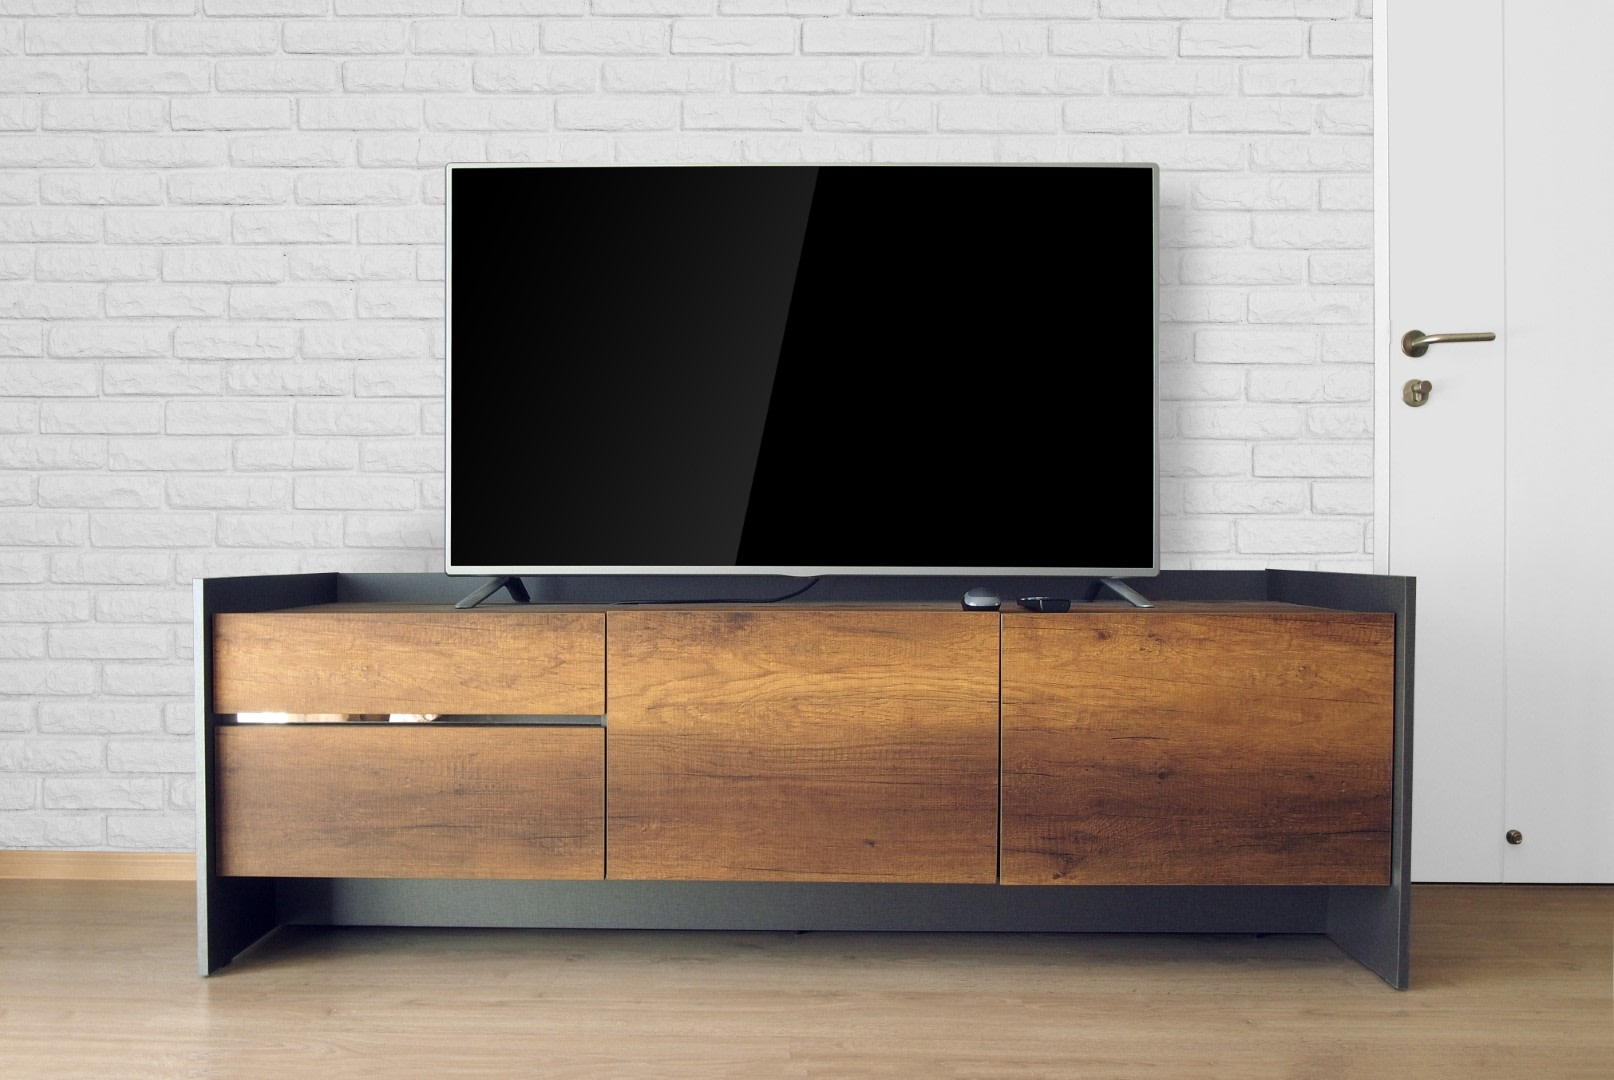 An image related to Reviewing 43-Inch HDR TVs